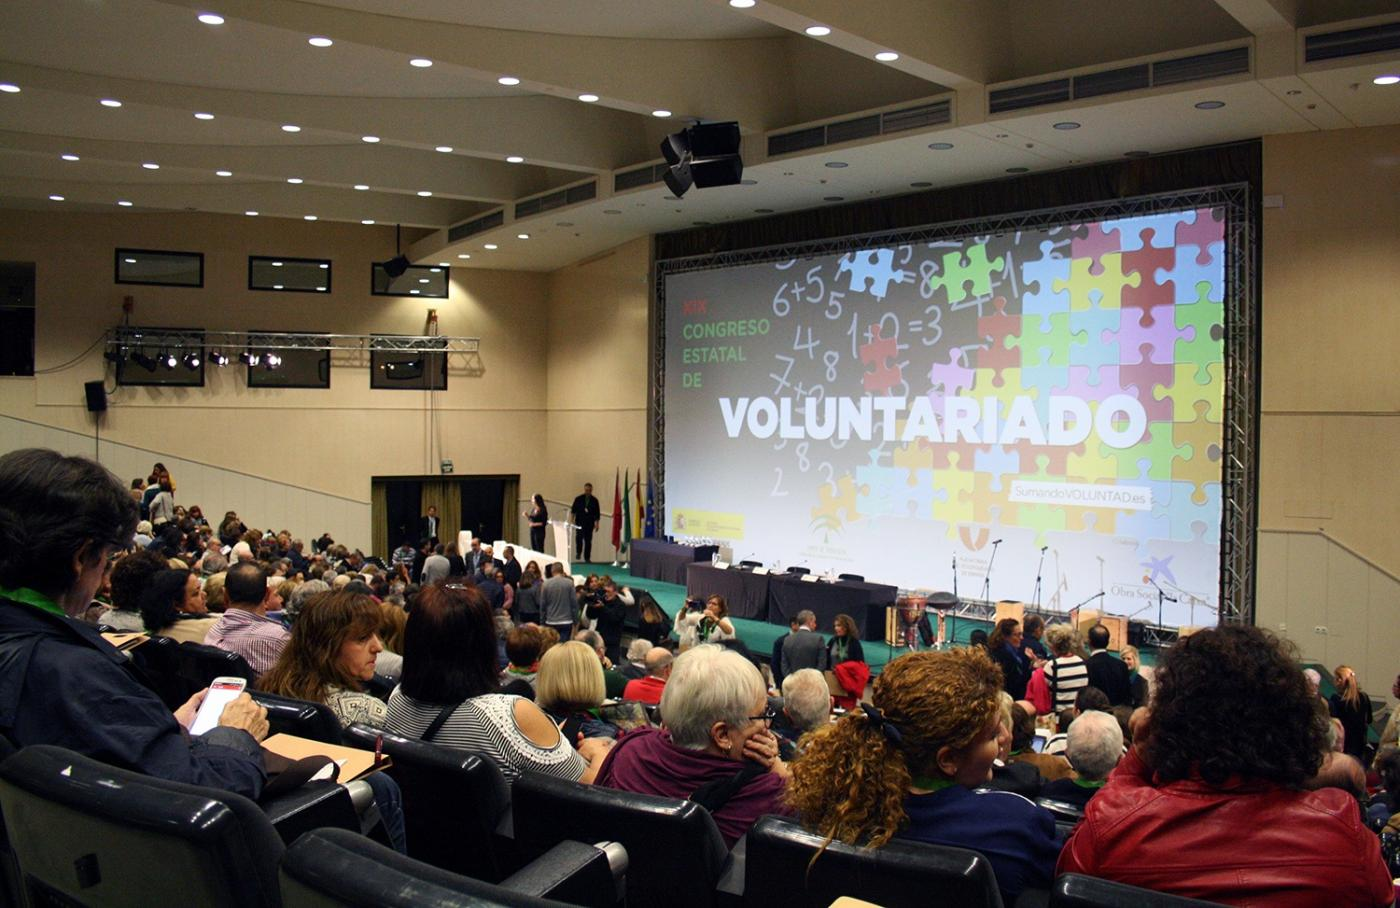 Congreso estatal de voluntariado en Sevilla. Archivo